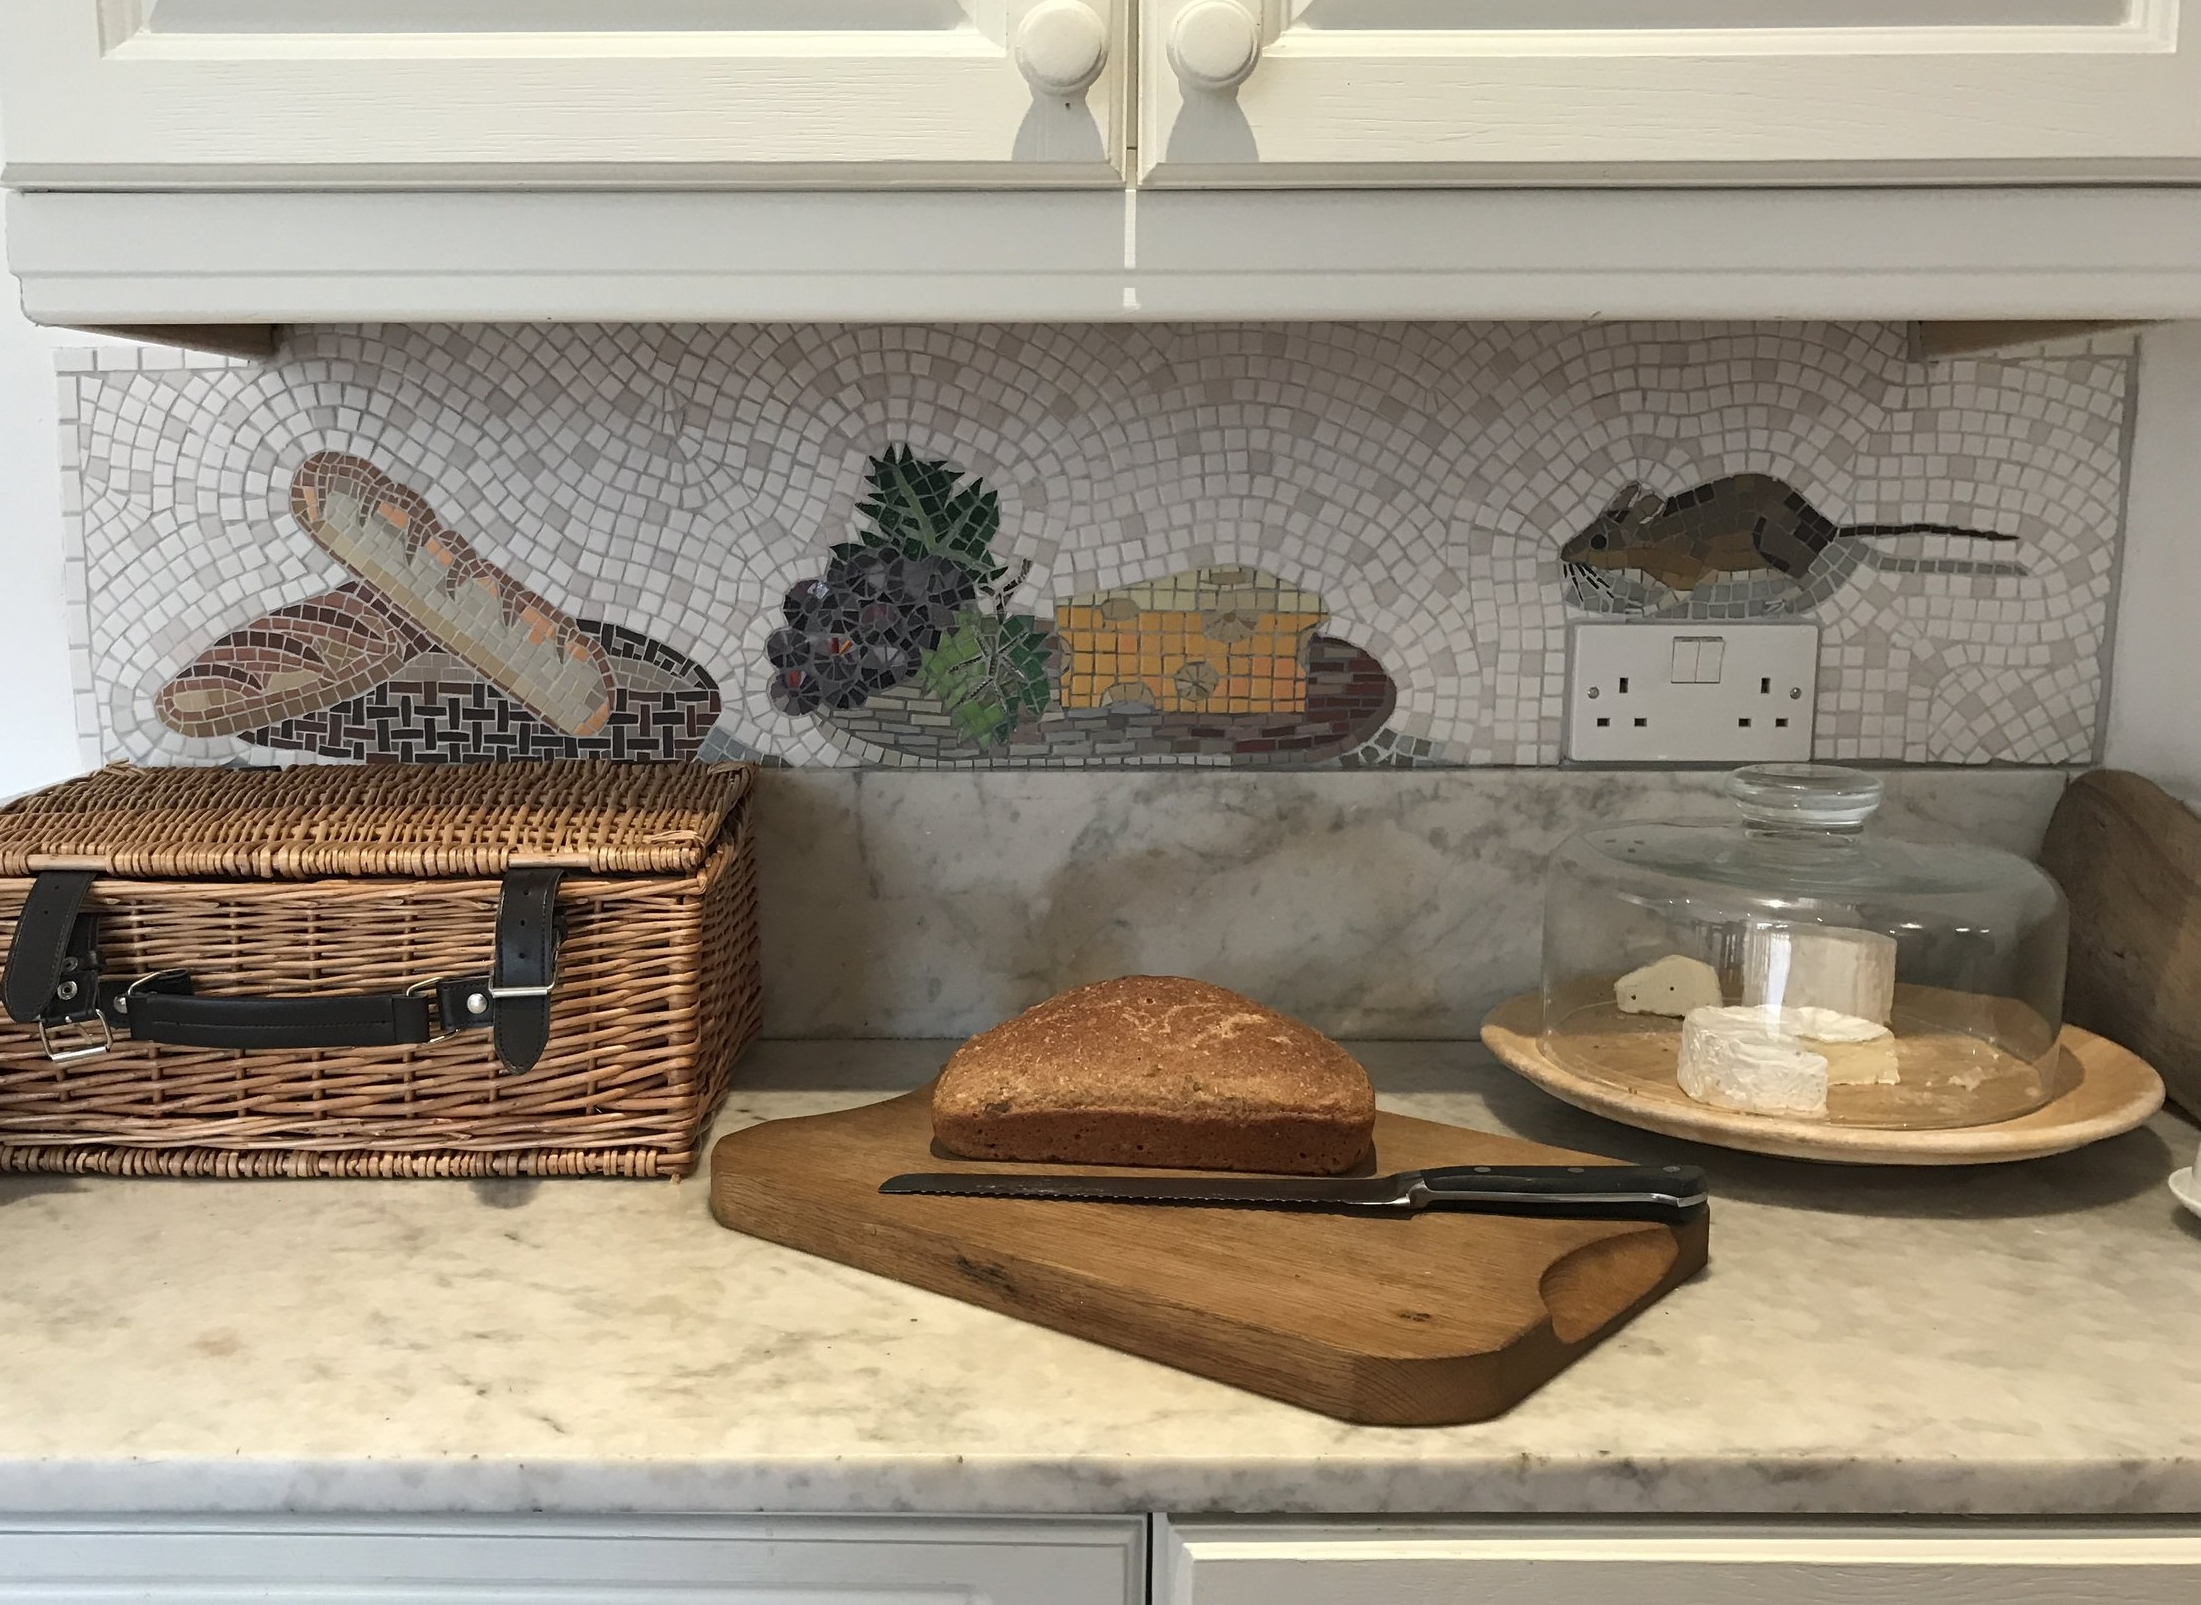 Splashback for a marble worktop. Basket of bread, grapes and cheese board and MOUSE. Matt porcelain, recycled crockery, vitreous glass. 12ins. x 48ins